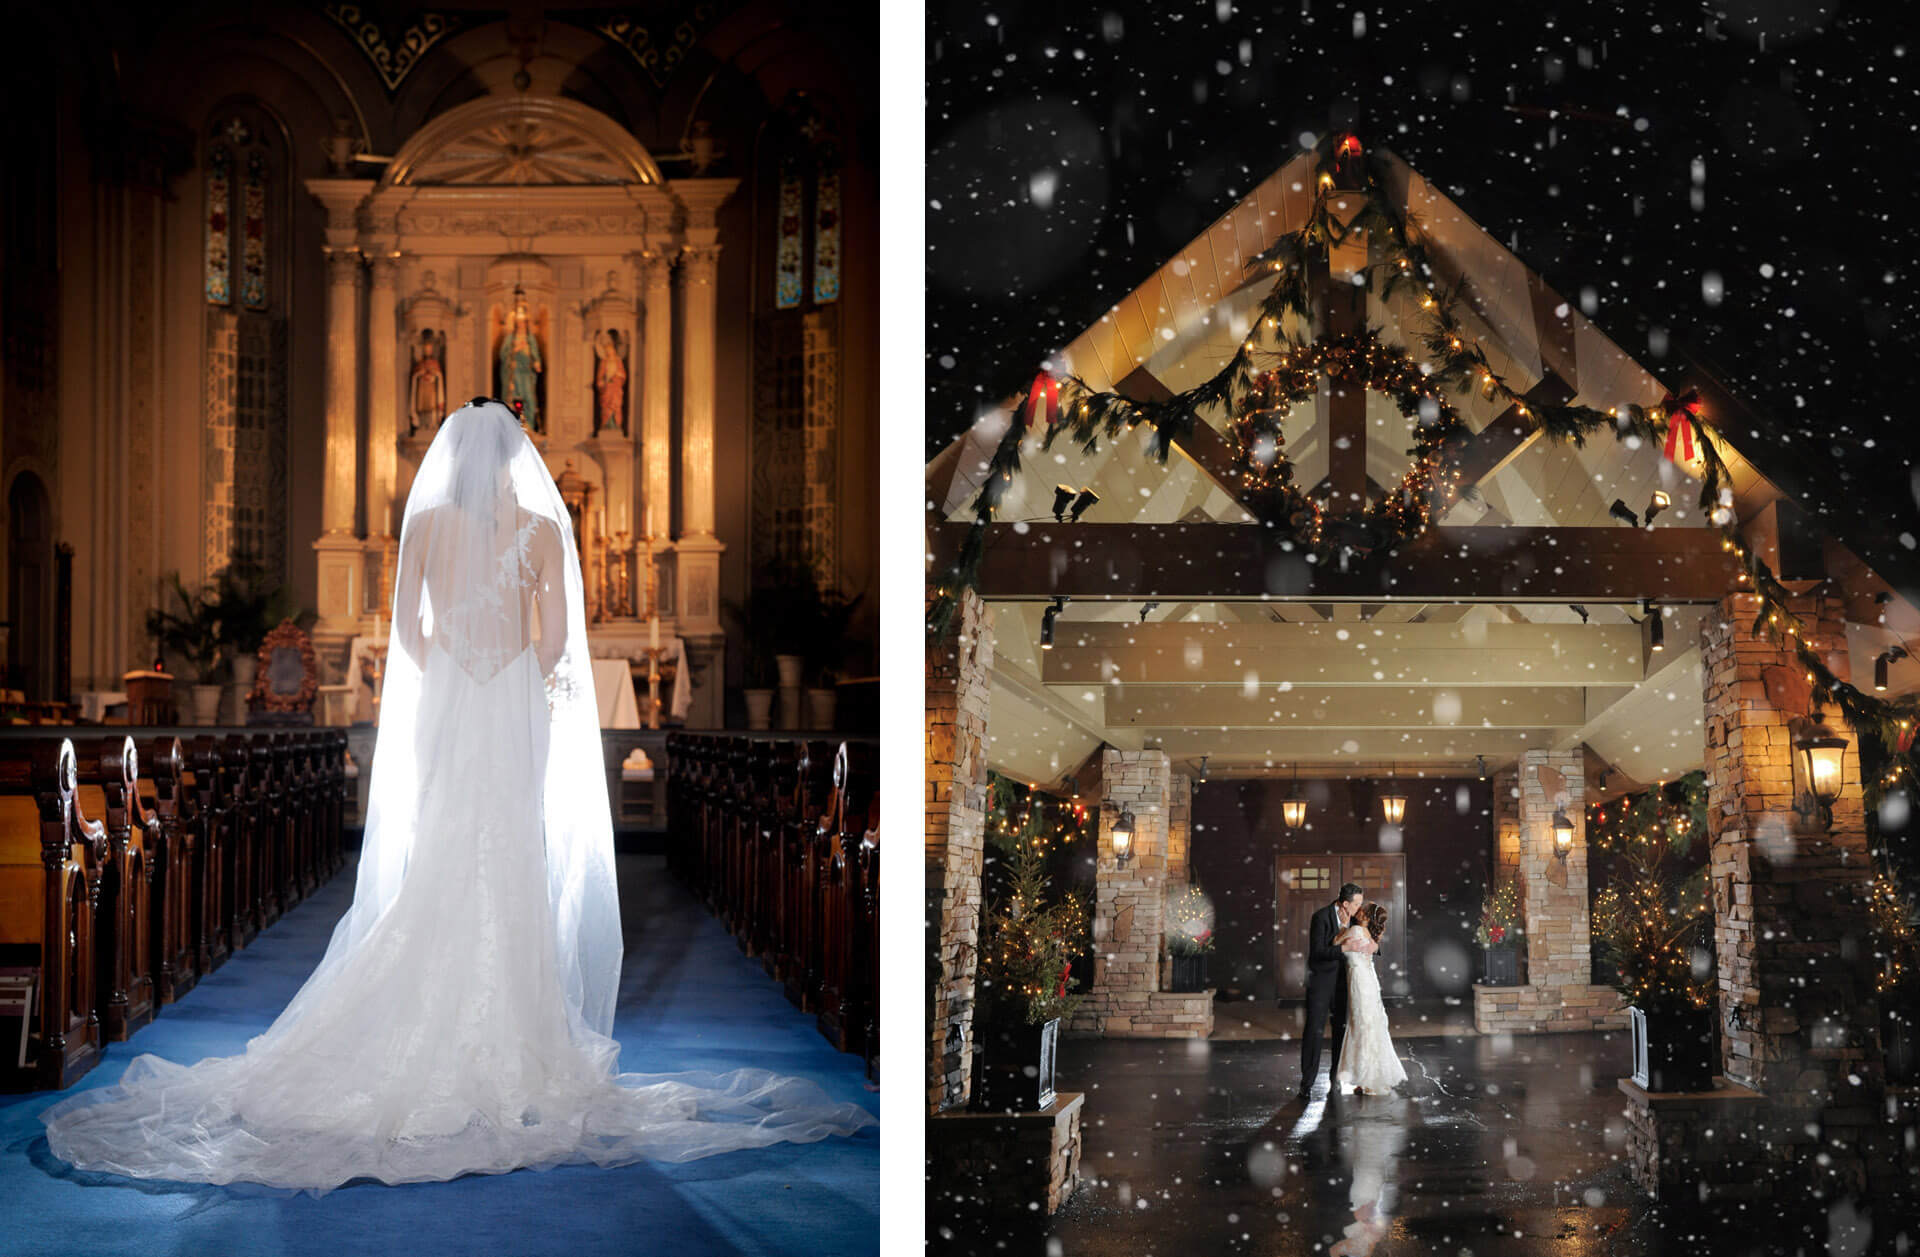 A dramatic bridal portrait taken in a Catholic church downtown Detroit and a couple in the winter snow at the Iroquois Club in Bloomfield Hills during their wedding reception.